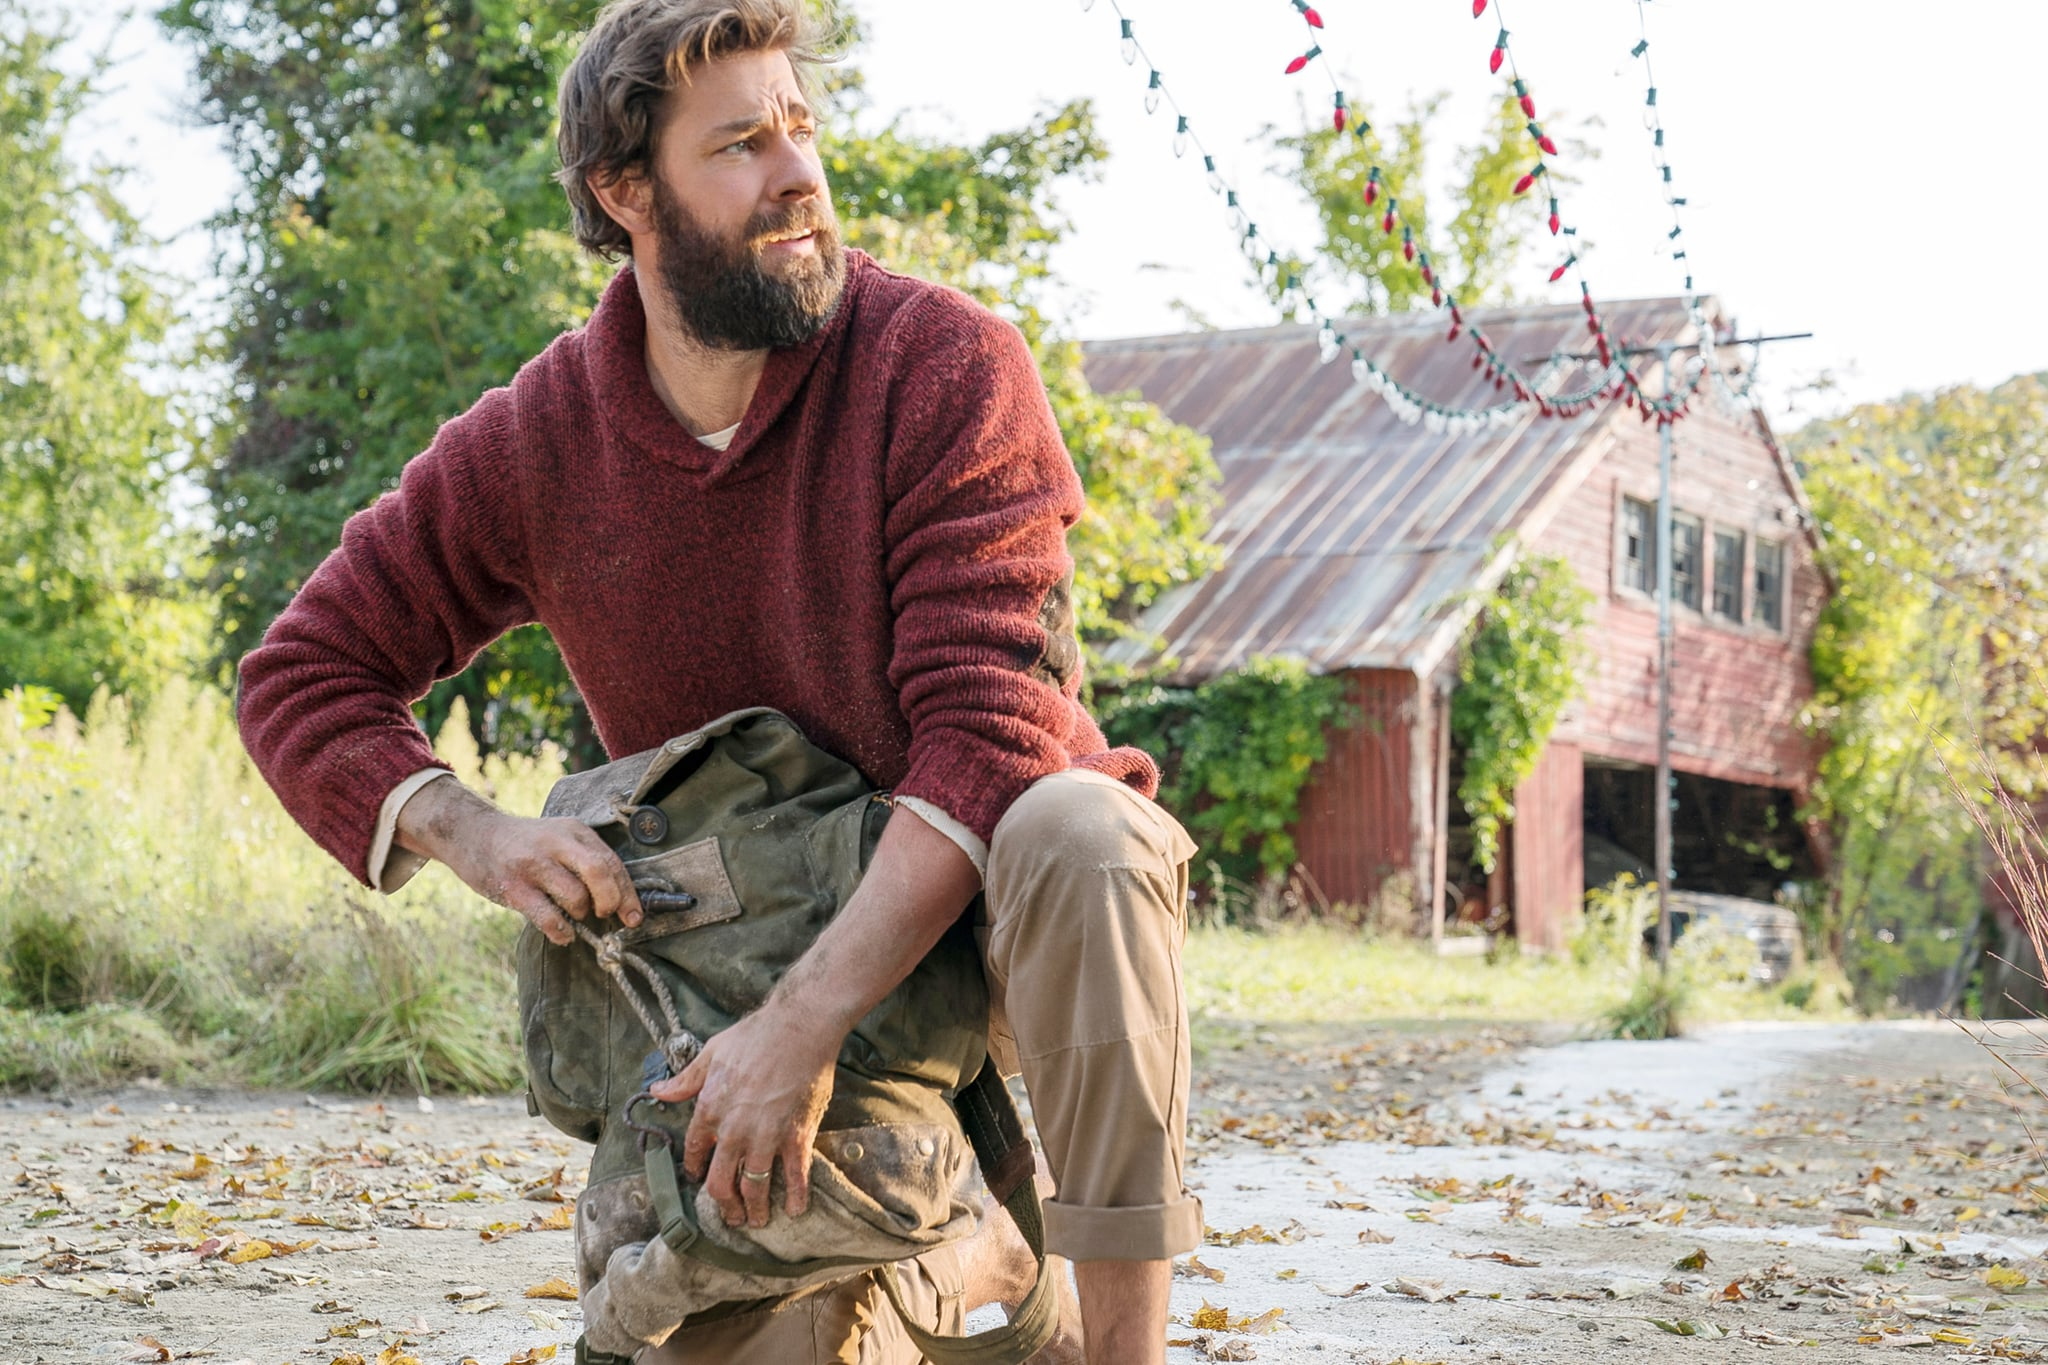 A QUIET PLACE, John Krasinski, 2018. Ph: Jonny Cournoyer / Paramount /